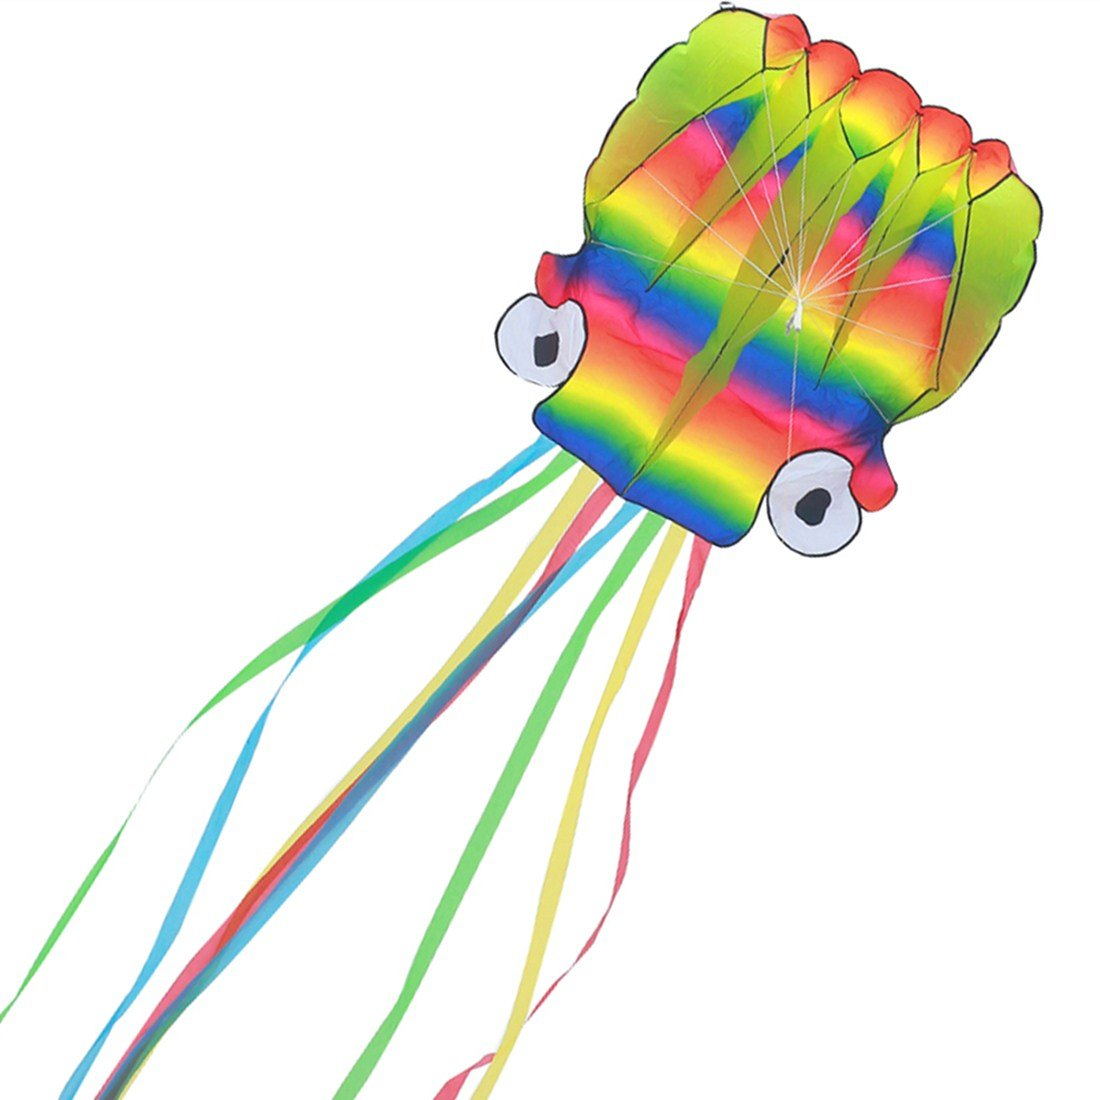 Giant Octopus Kite for Kids and Adults - Large Rainbow Easy Flyer with 157-Inch Long Tails